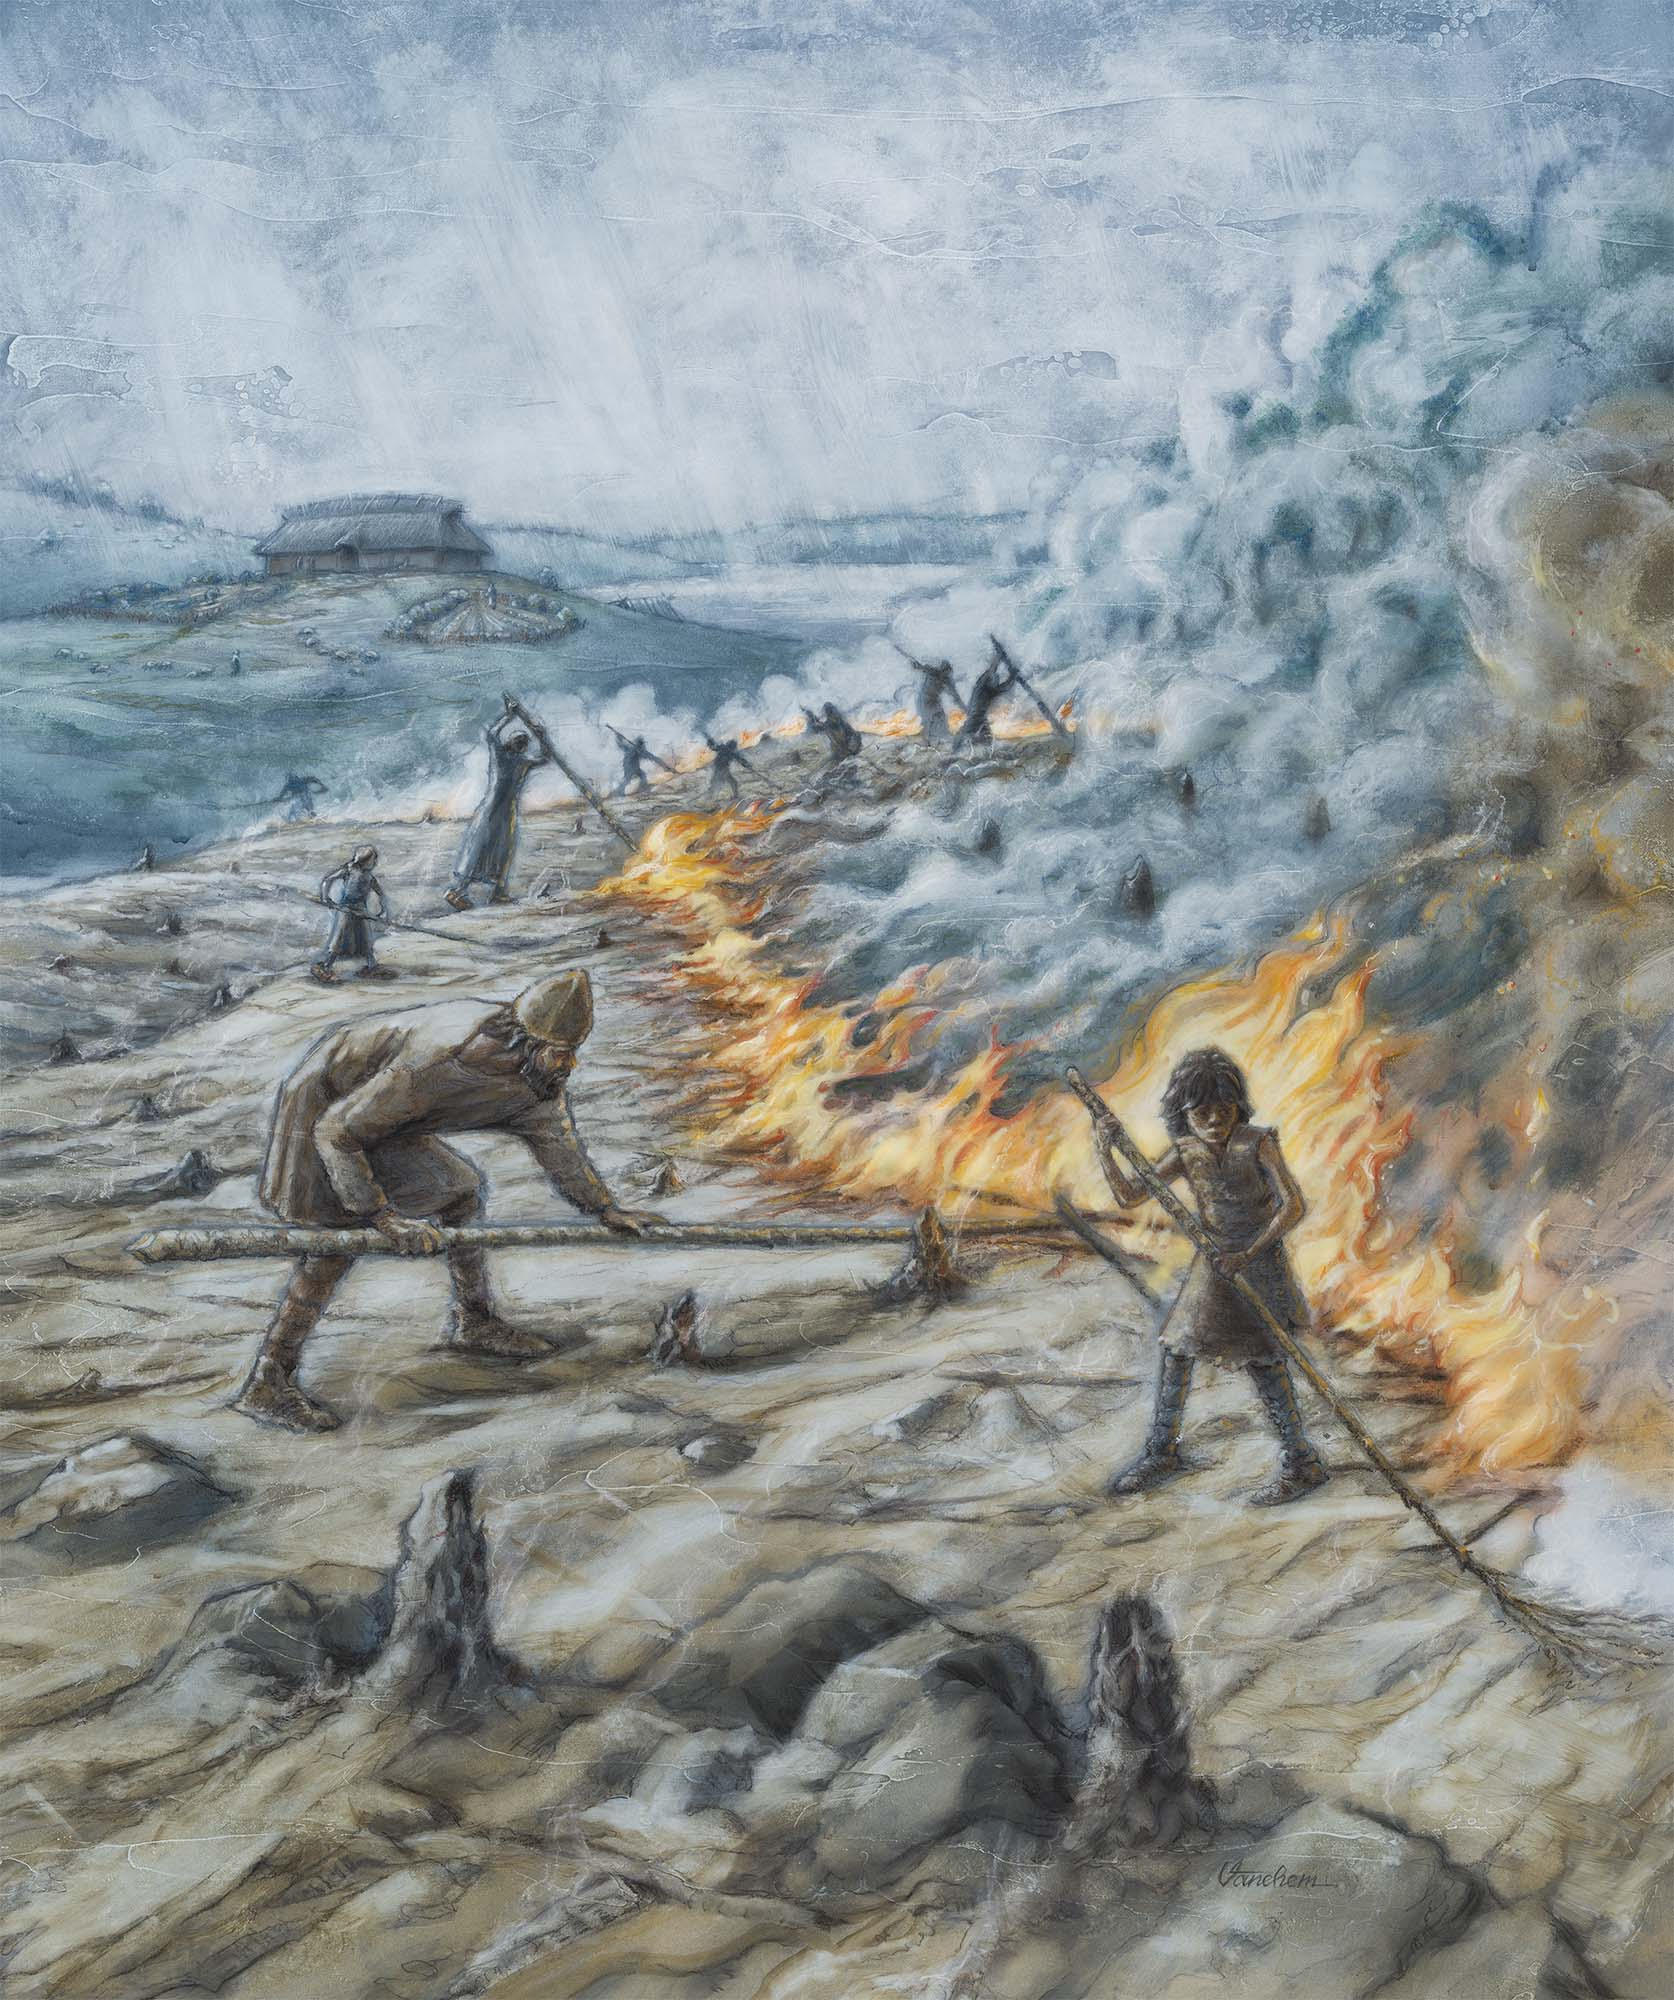 Burn-beating farmers during Neolithicum in the south of Norway (Client: Aust Agder Museum og Arkiv in Arendal, Norway).